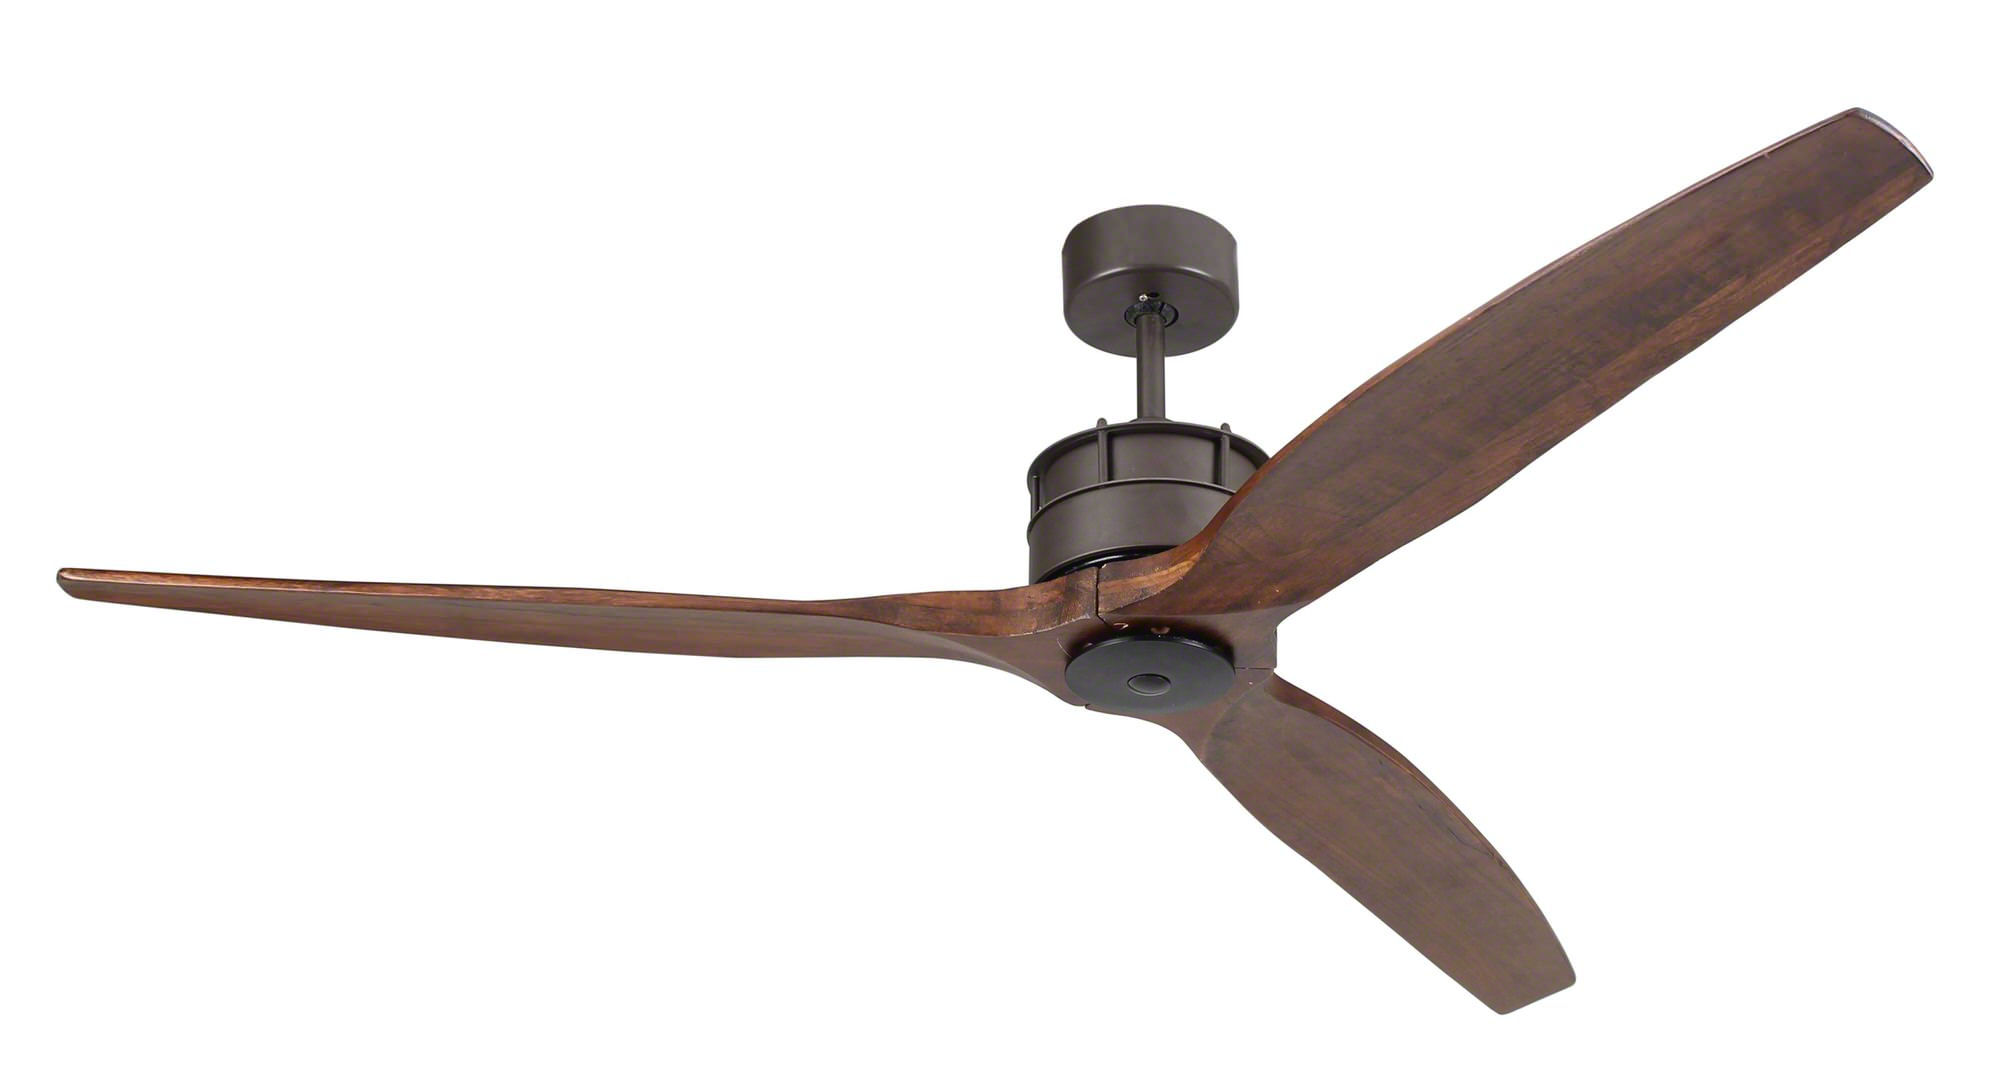 Lucci akmani ultra low energy dc ceiling fan new 2016 Ceiling fans no light